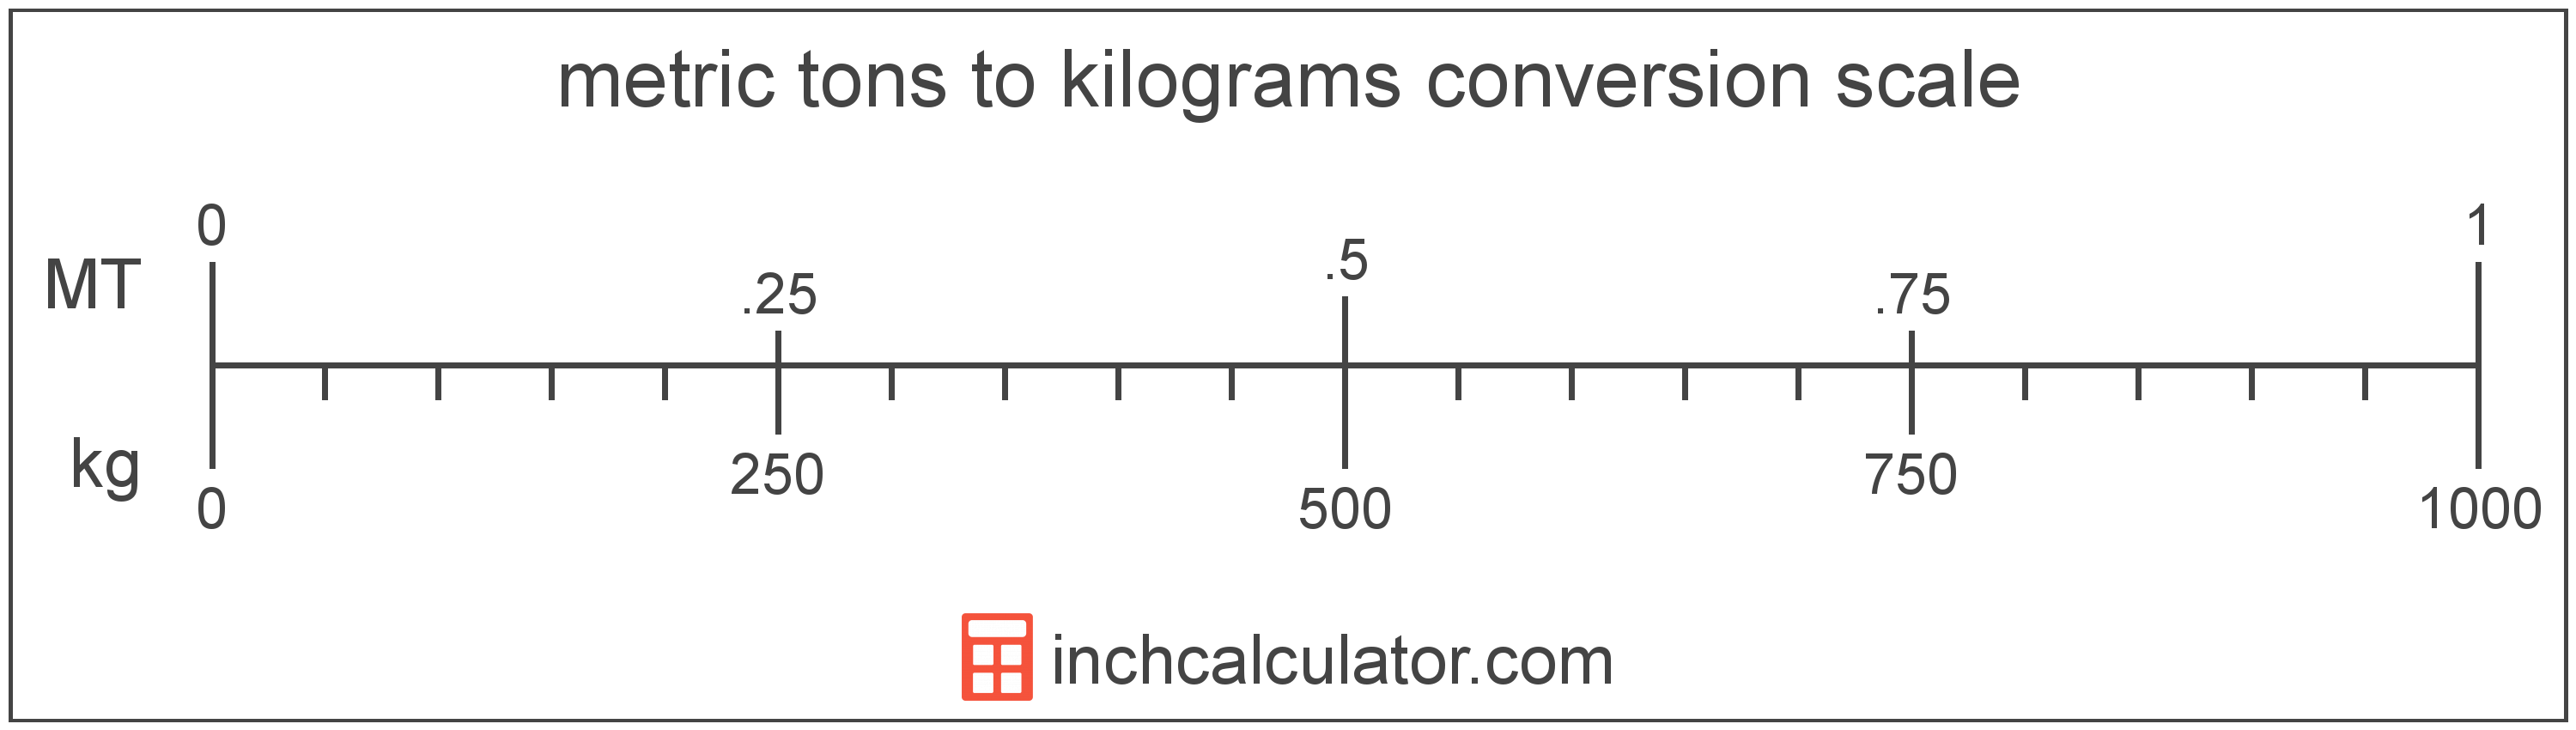 conversion scale showing kilograms and equivalent metric tons weight values